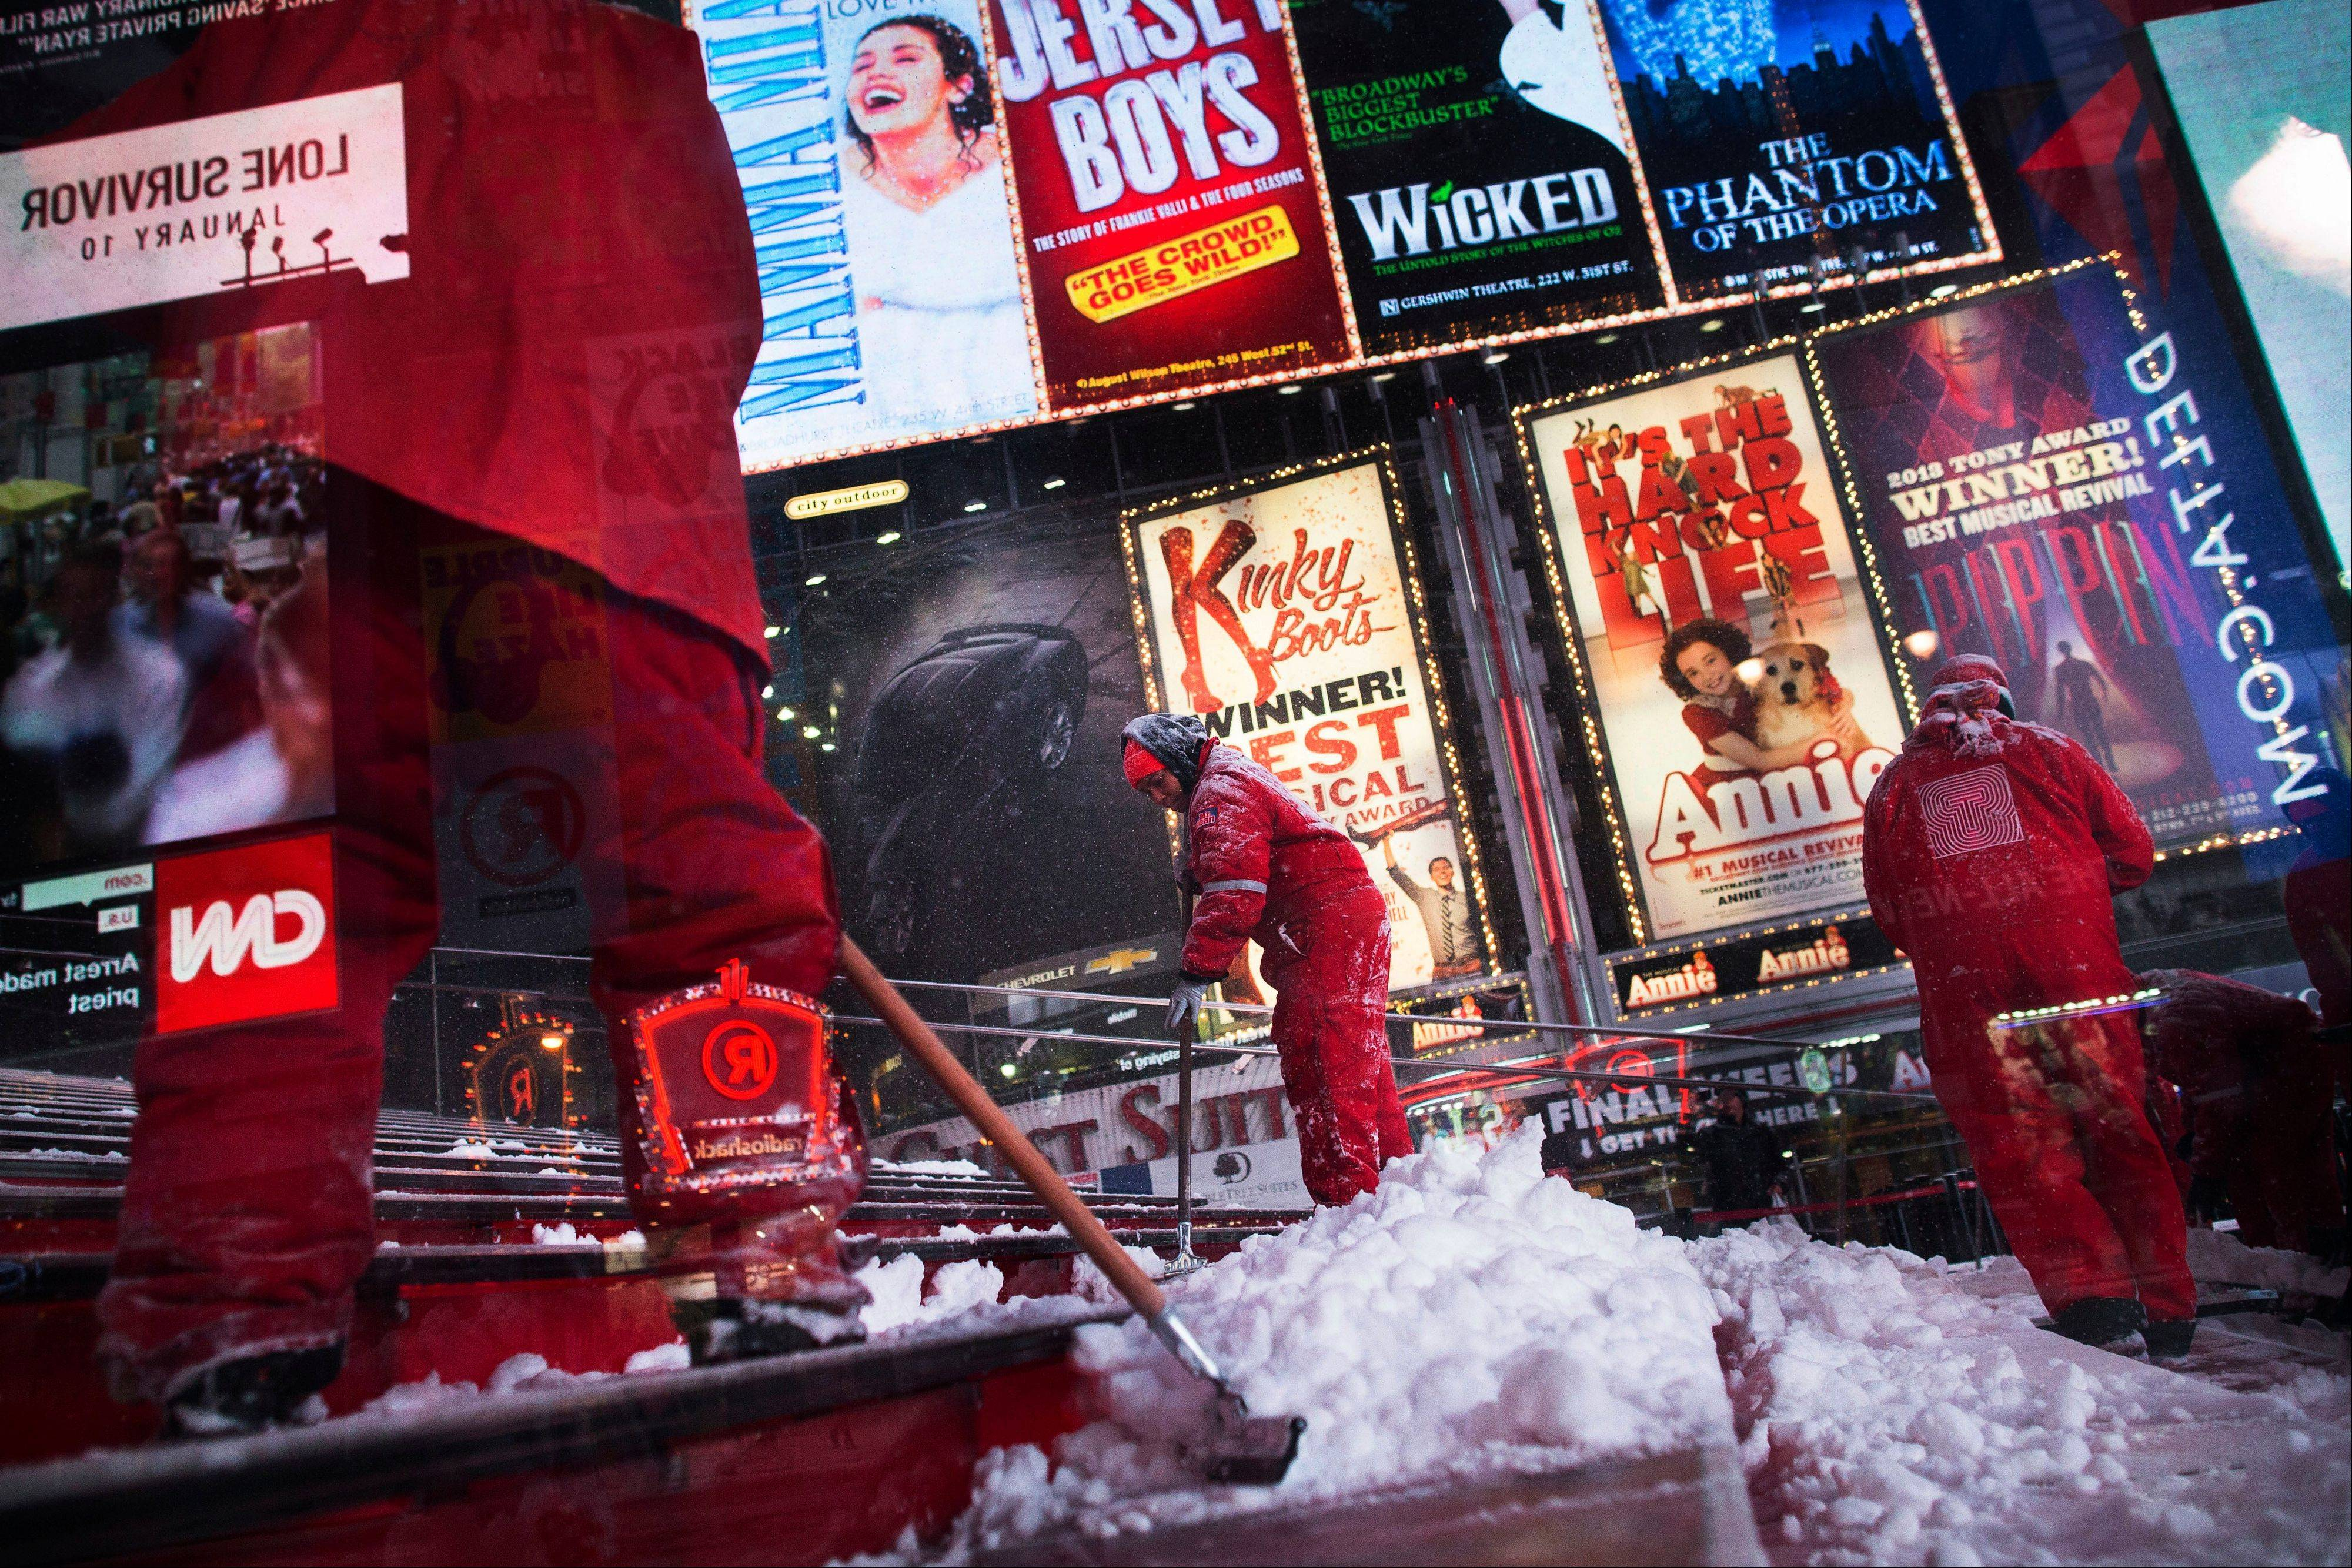 Workers clean snow from the steps of TKTS Times Square ticket booth, Thursday, Jan. 2, 2014, in New York. The storm is expected to bring snow, stiff winds and punishing cold into the Northeast.